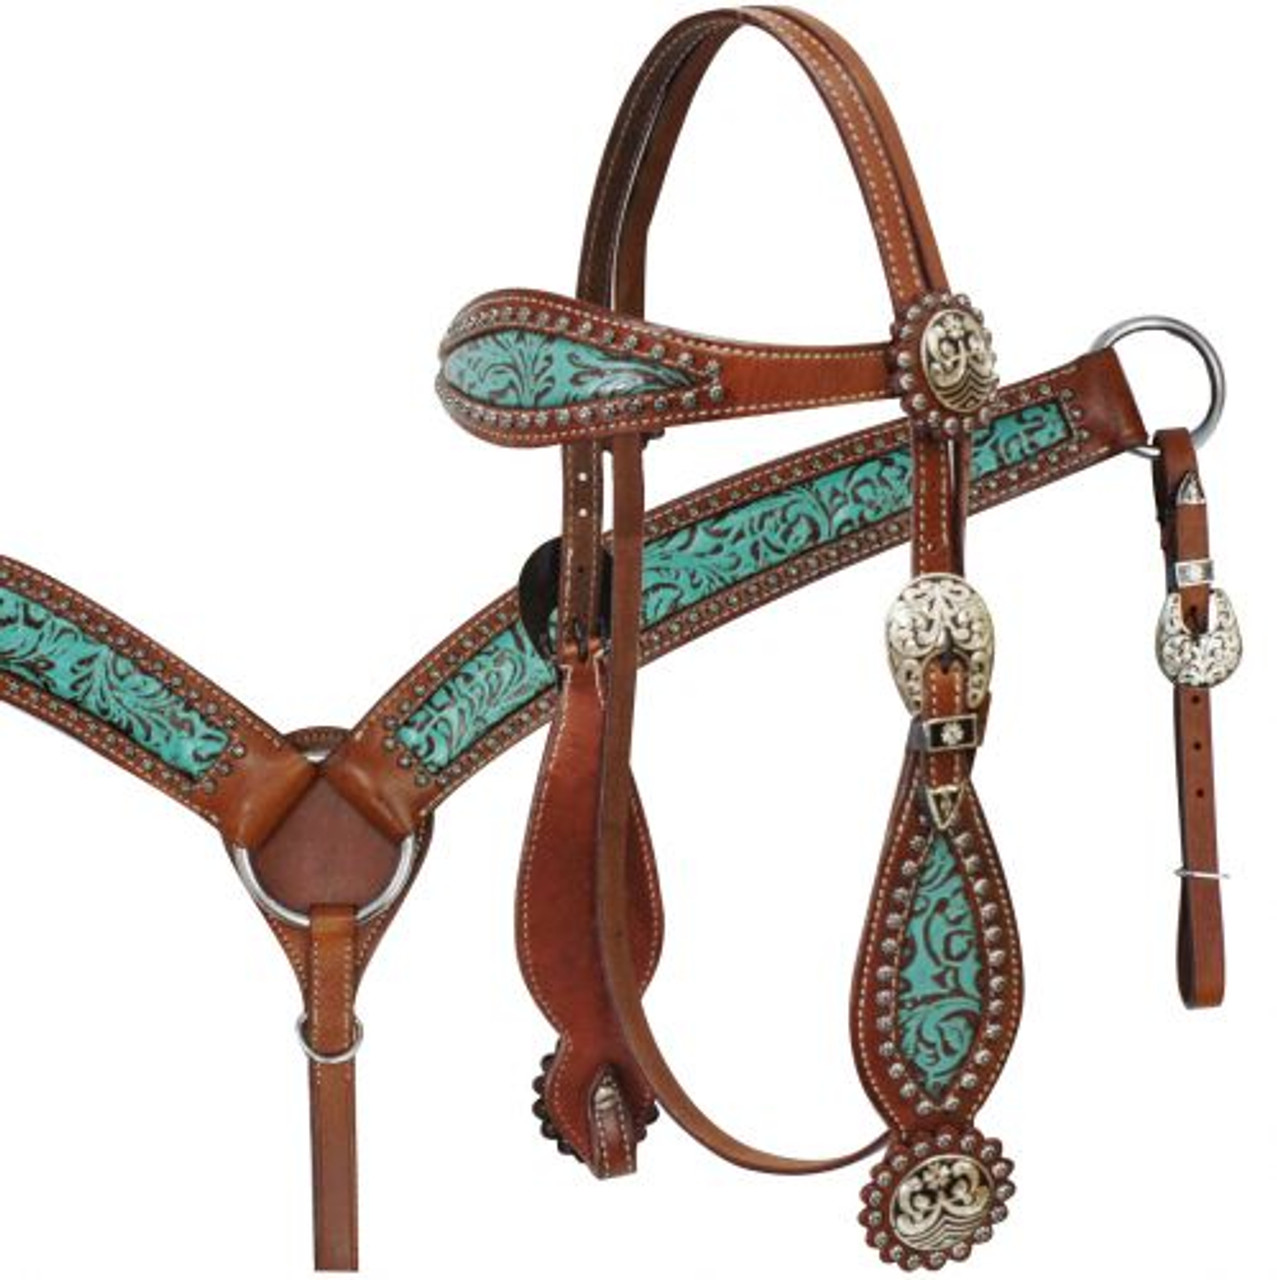 Showman Teal Filigree Headstall /& Breast Collar Set w//Copper Rosette Conchos /& Reins New Horse TACK!